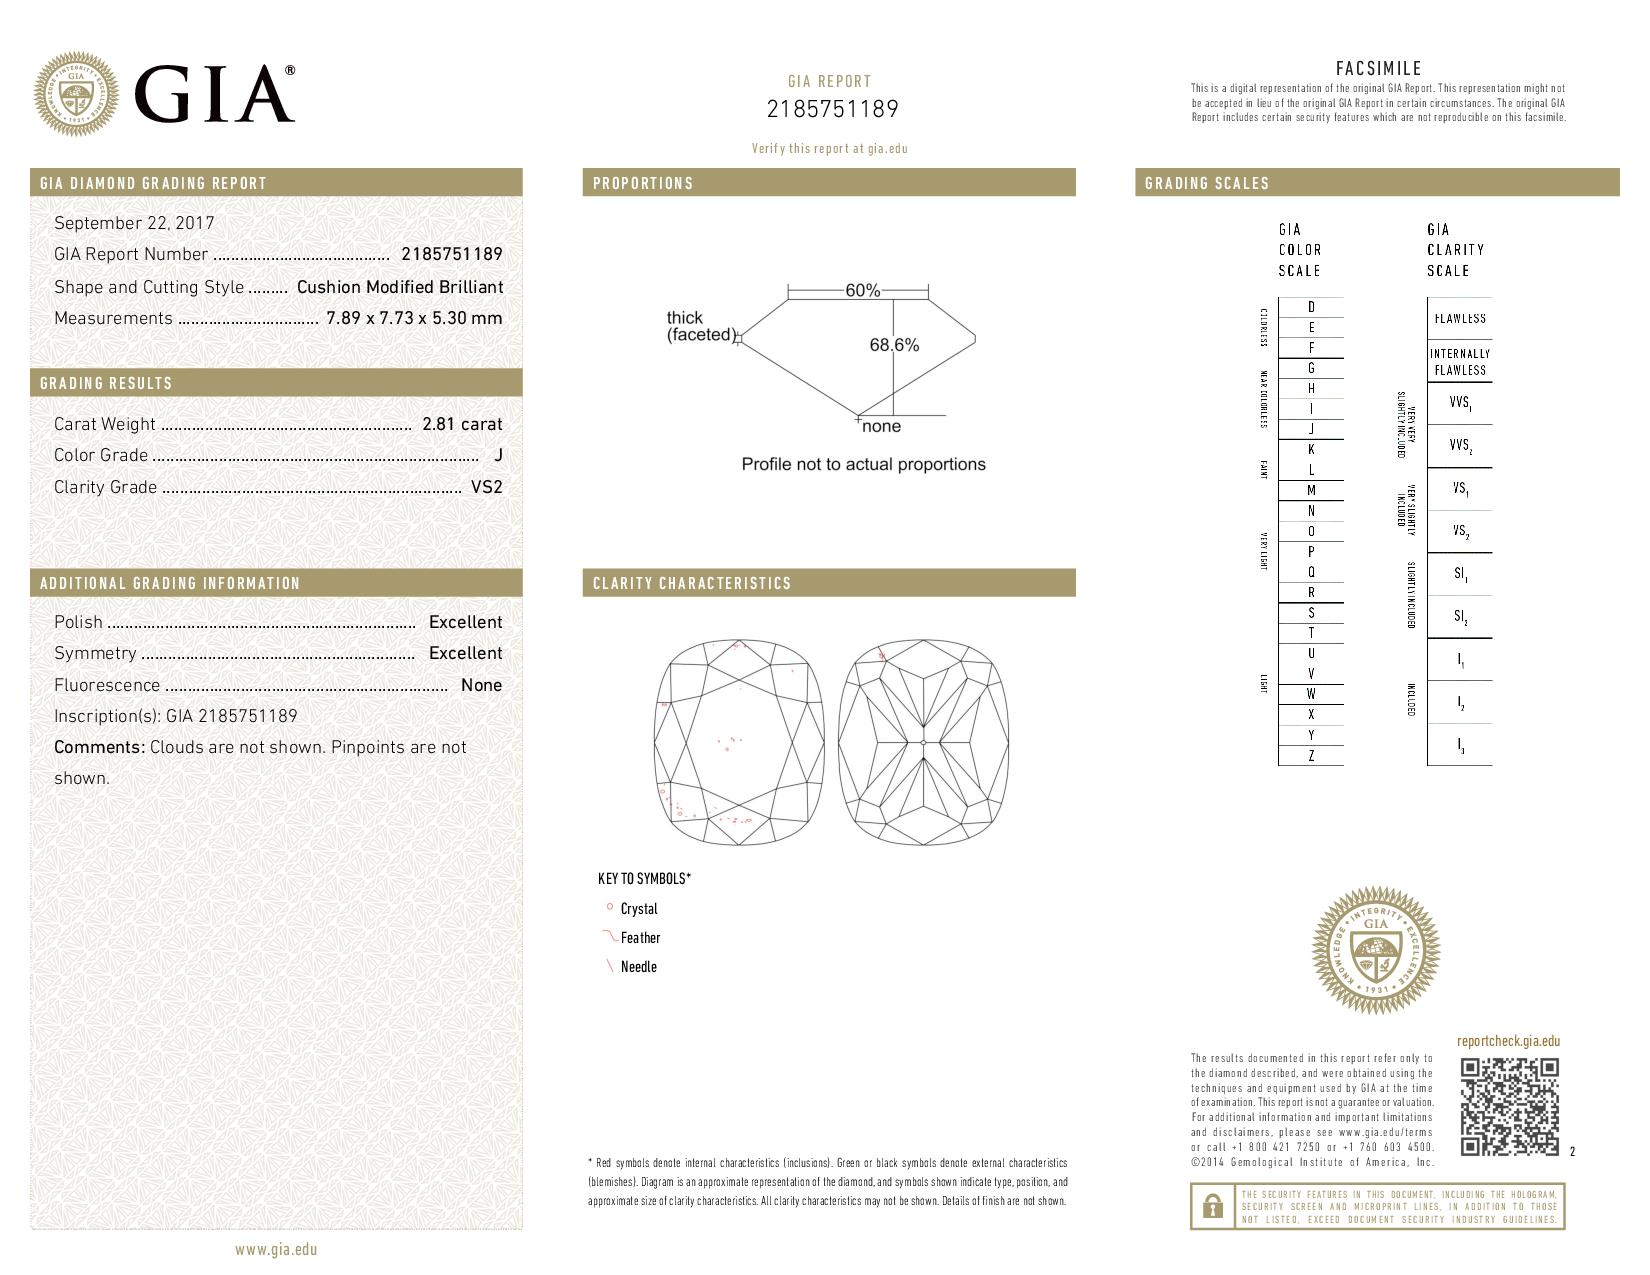 This is a 2.81 carat cushion shape, J color, VS2 clarity natural diamond accompanied by a GIA grading report.